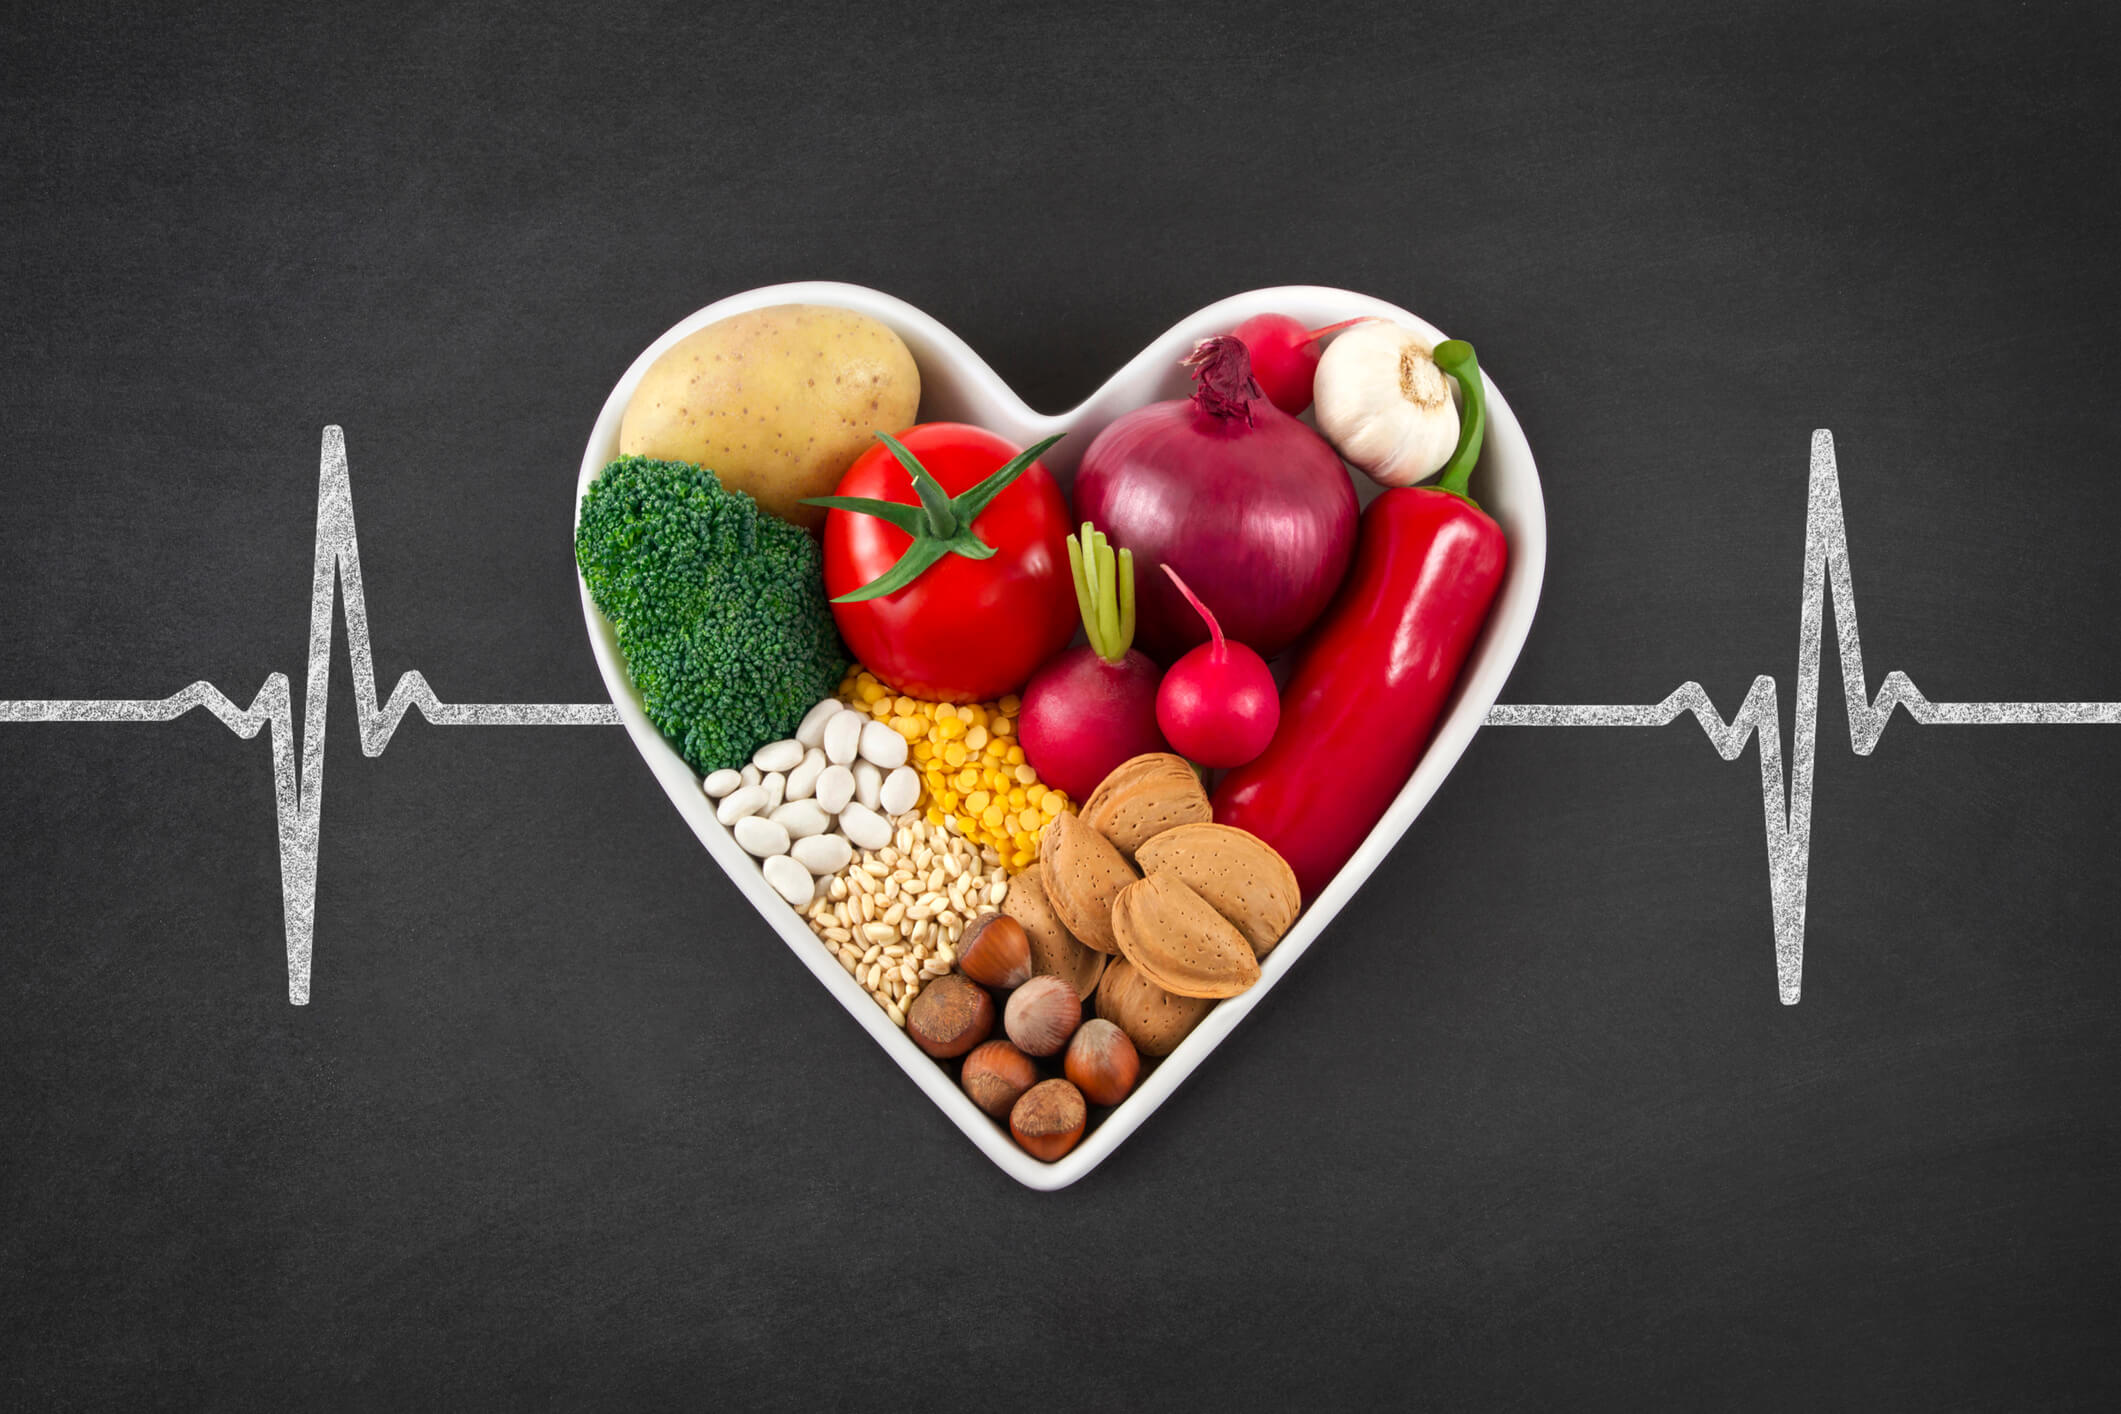 5 Heart-Healthy Tips from a Naturopathic Medicine Expert